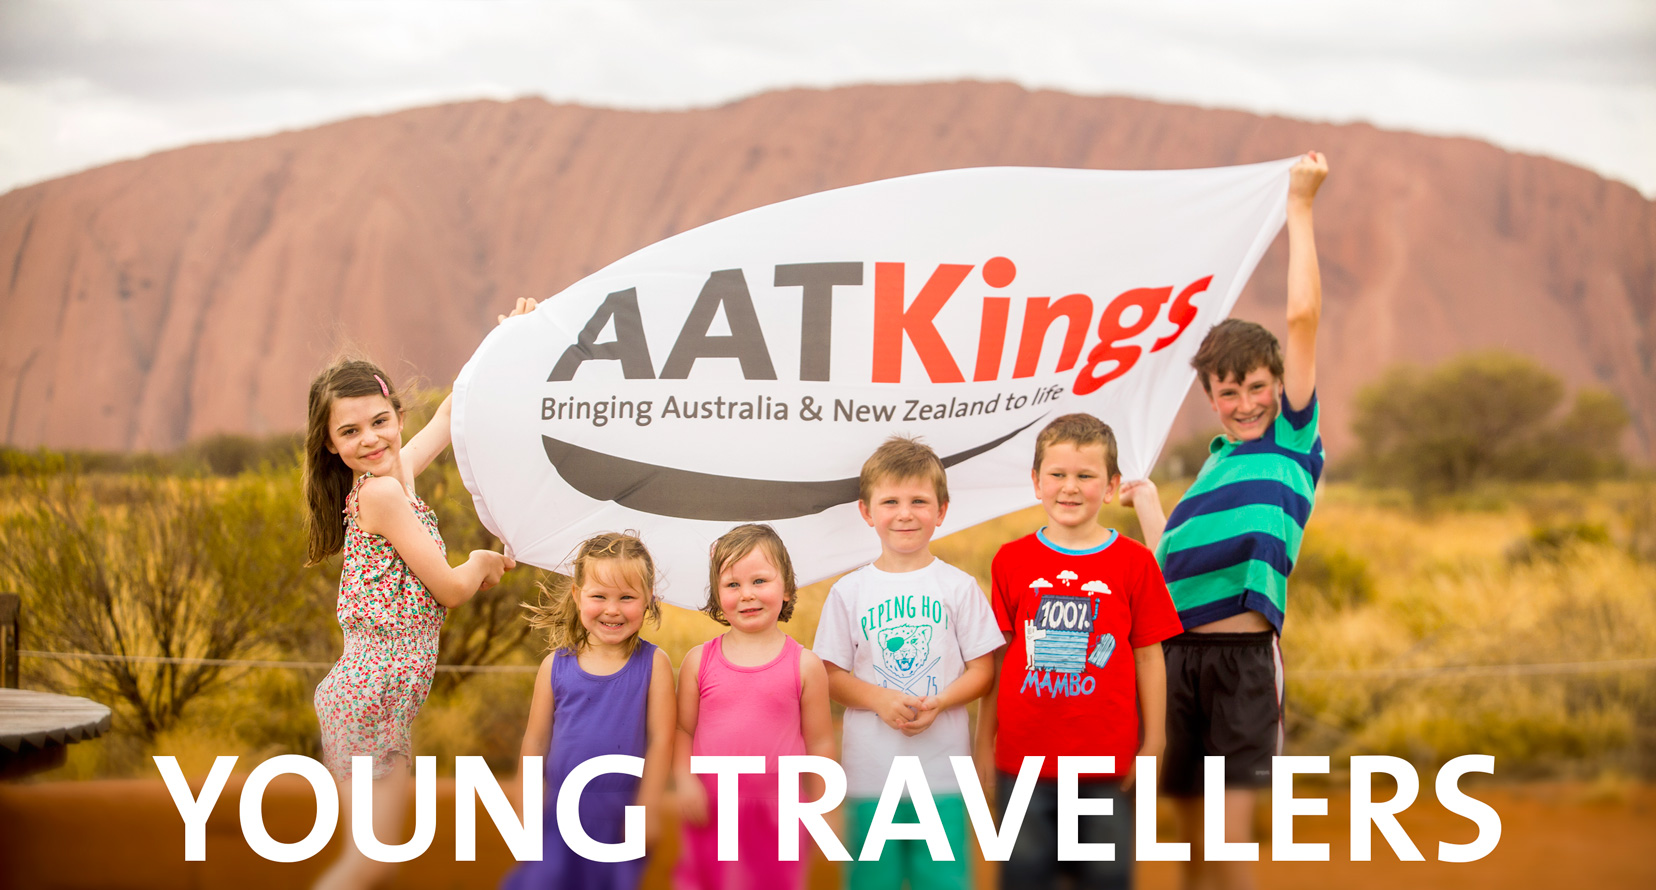 Children and young travellers at Uluru viewing area with AAT Kings